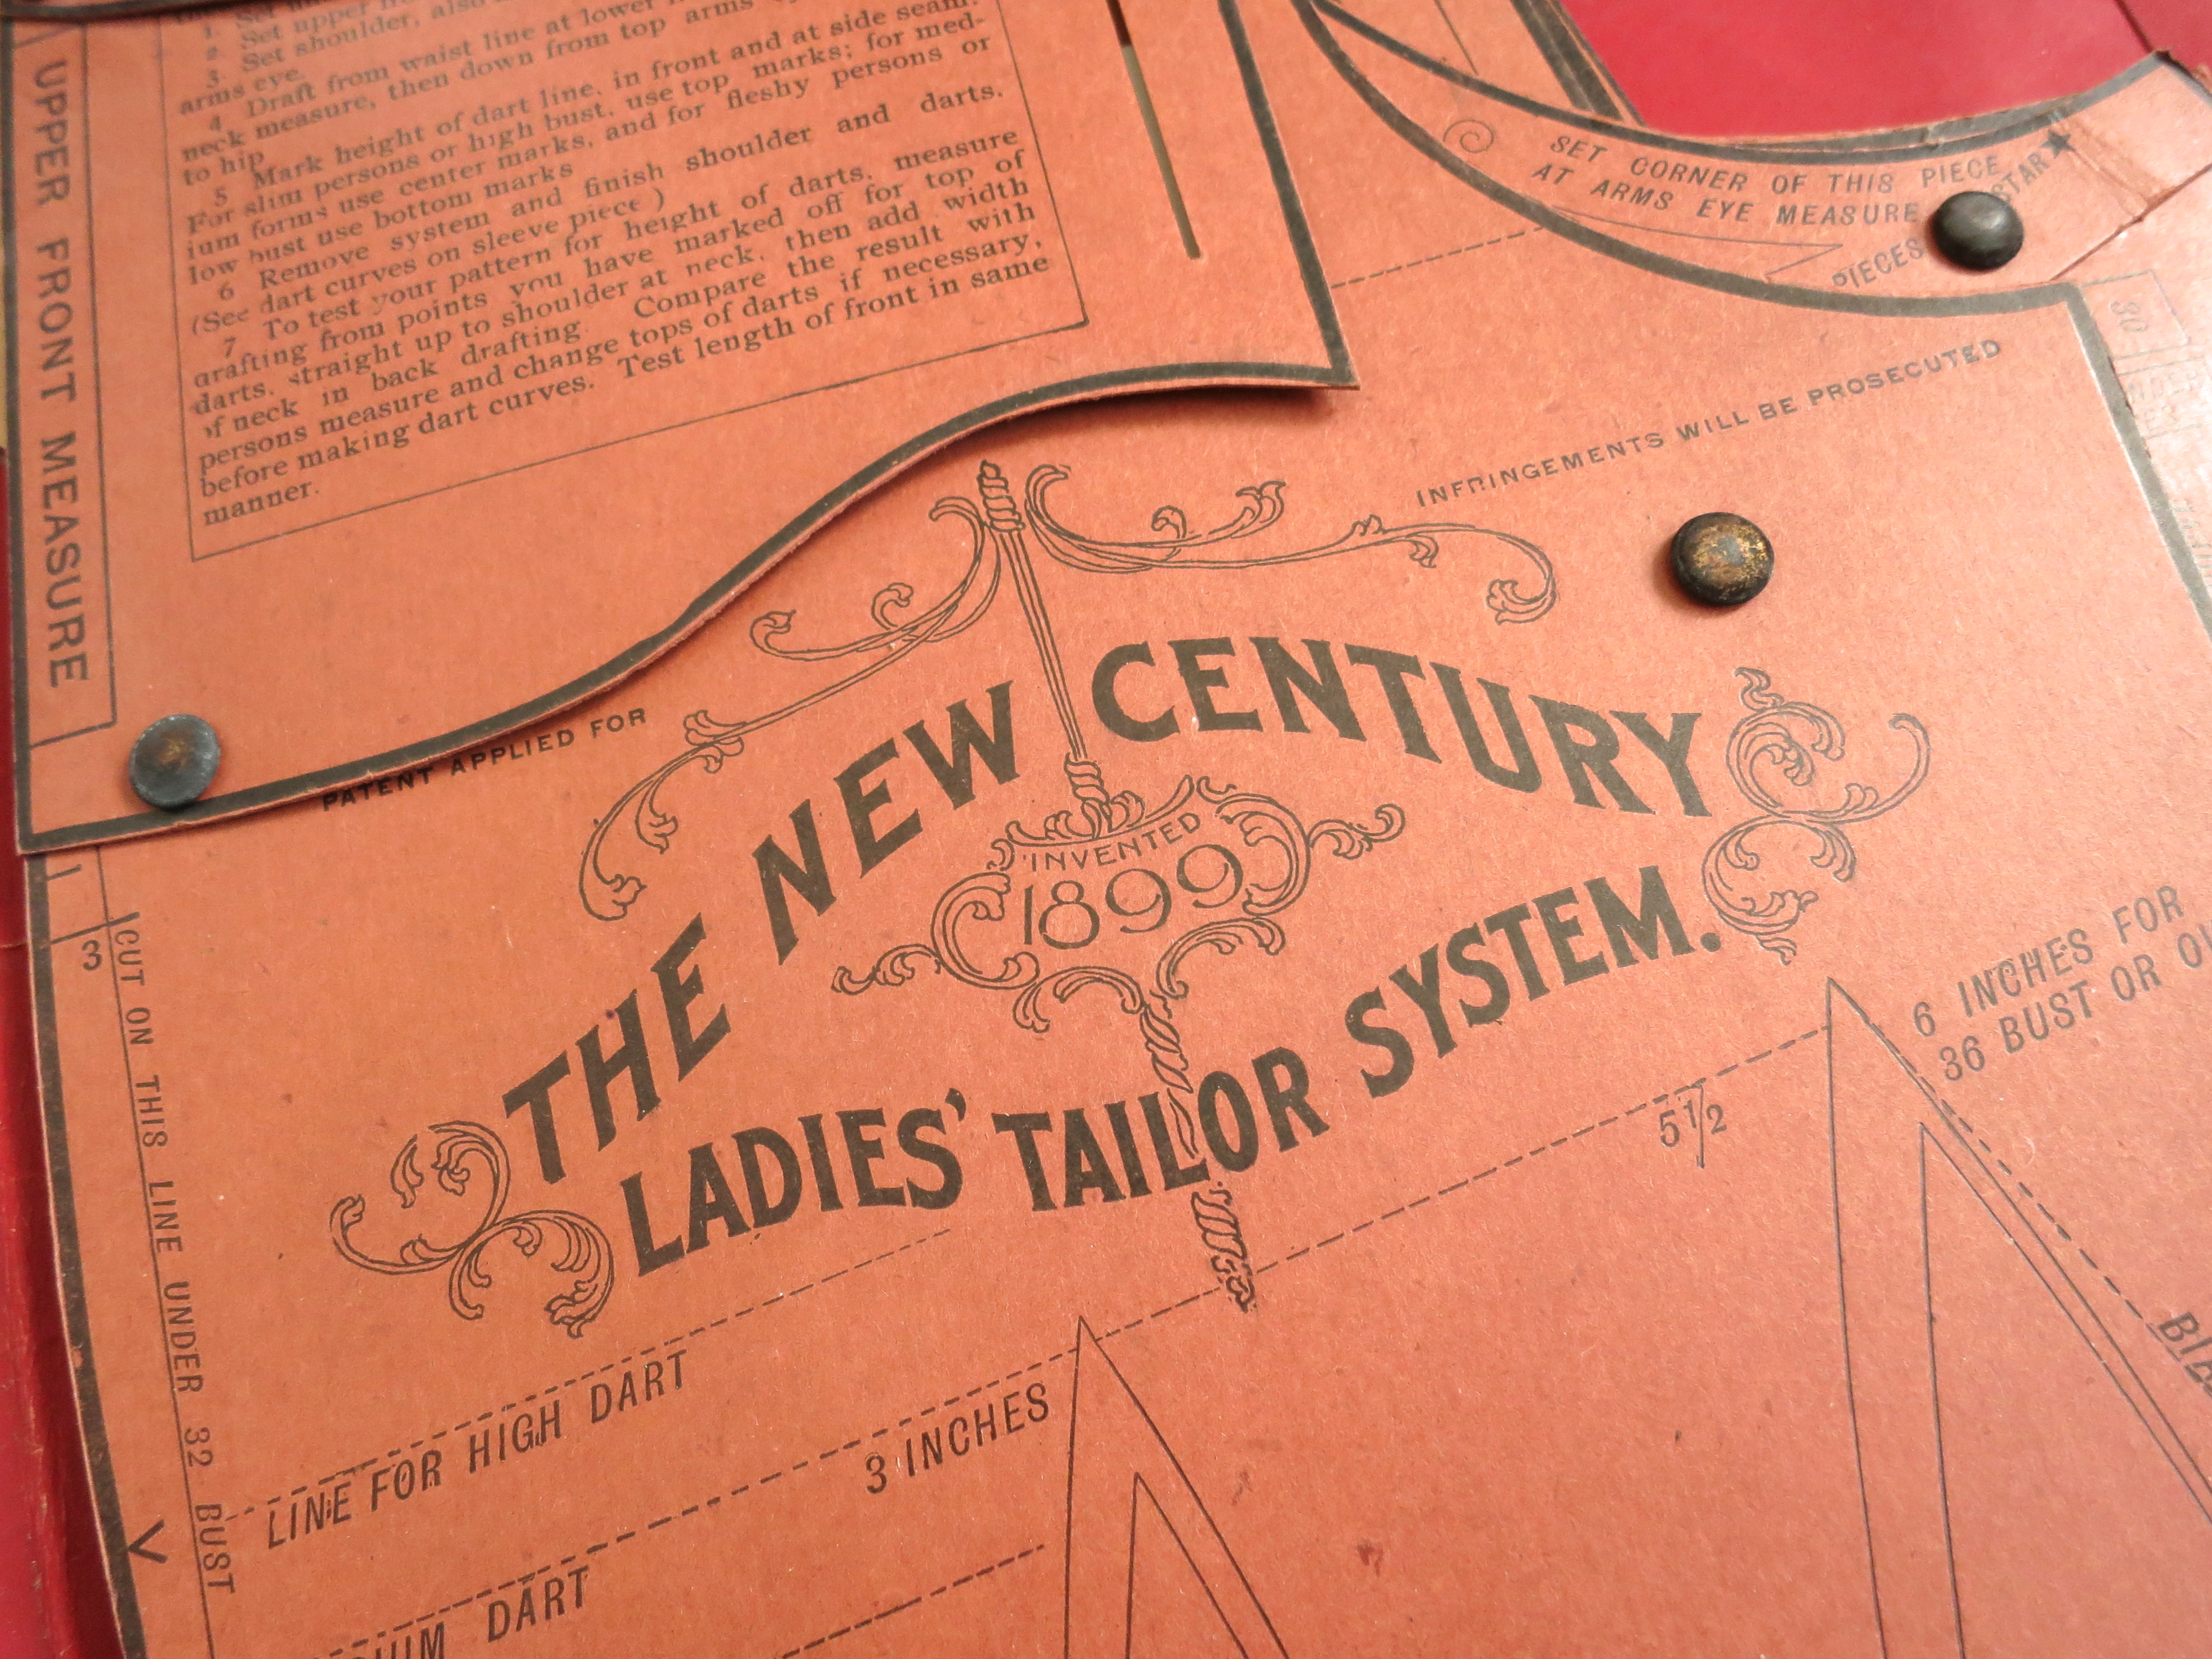 The New Century Ladies' Tailoring System 1899: Detail.